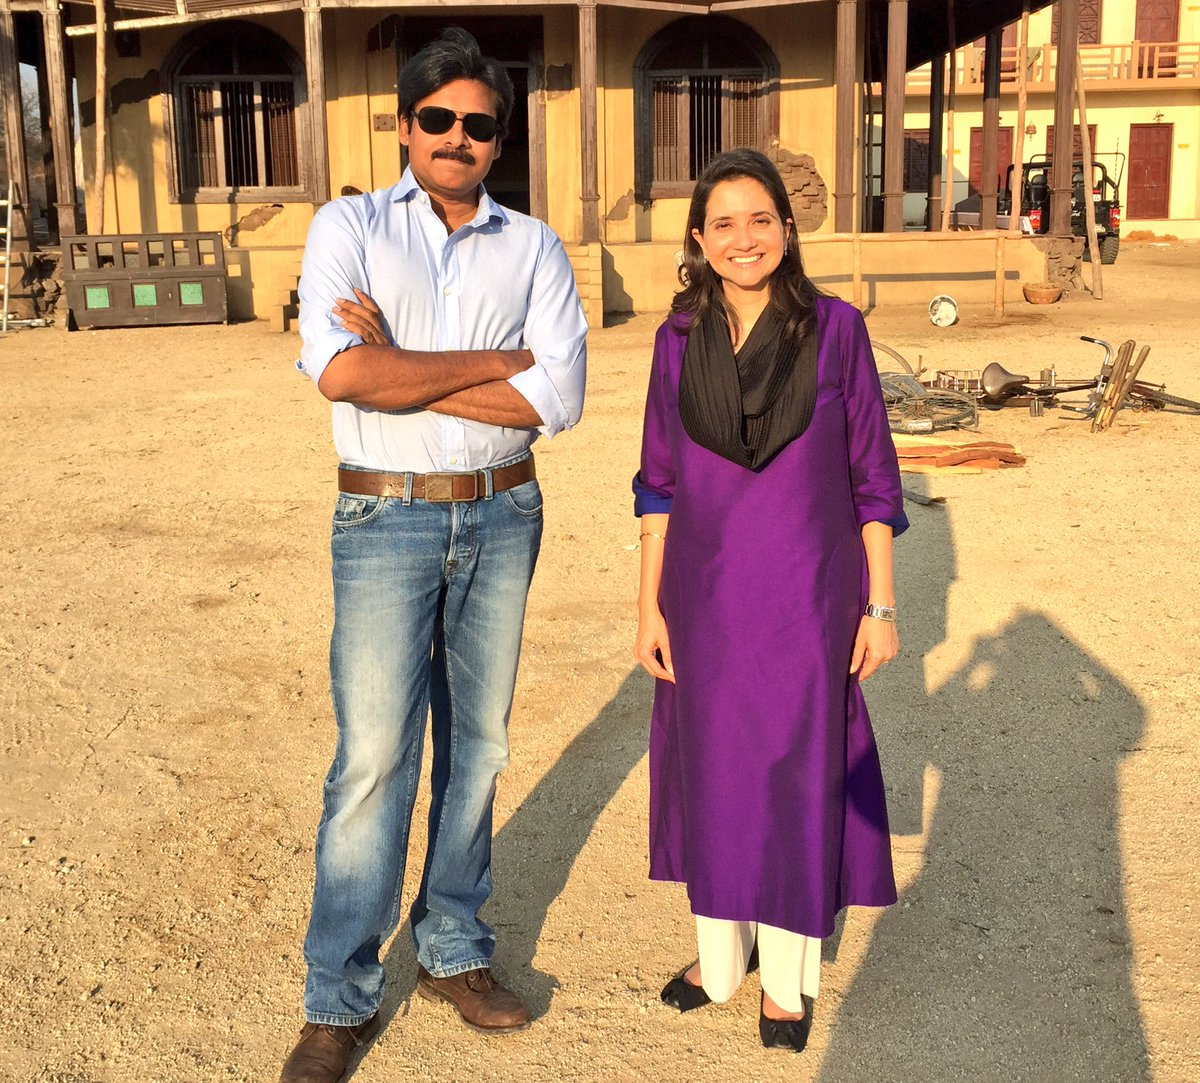 What an amazing experience! The #PowerStar @PawanKalyan is both gracious & inspiring. https://t.co/w8euW4RkVf